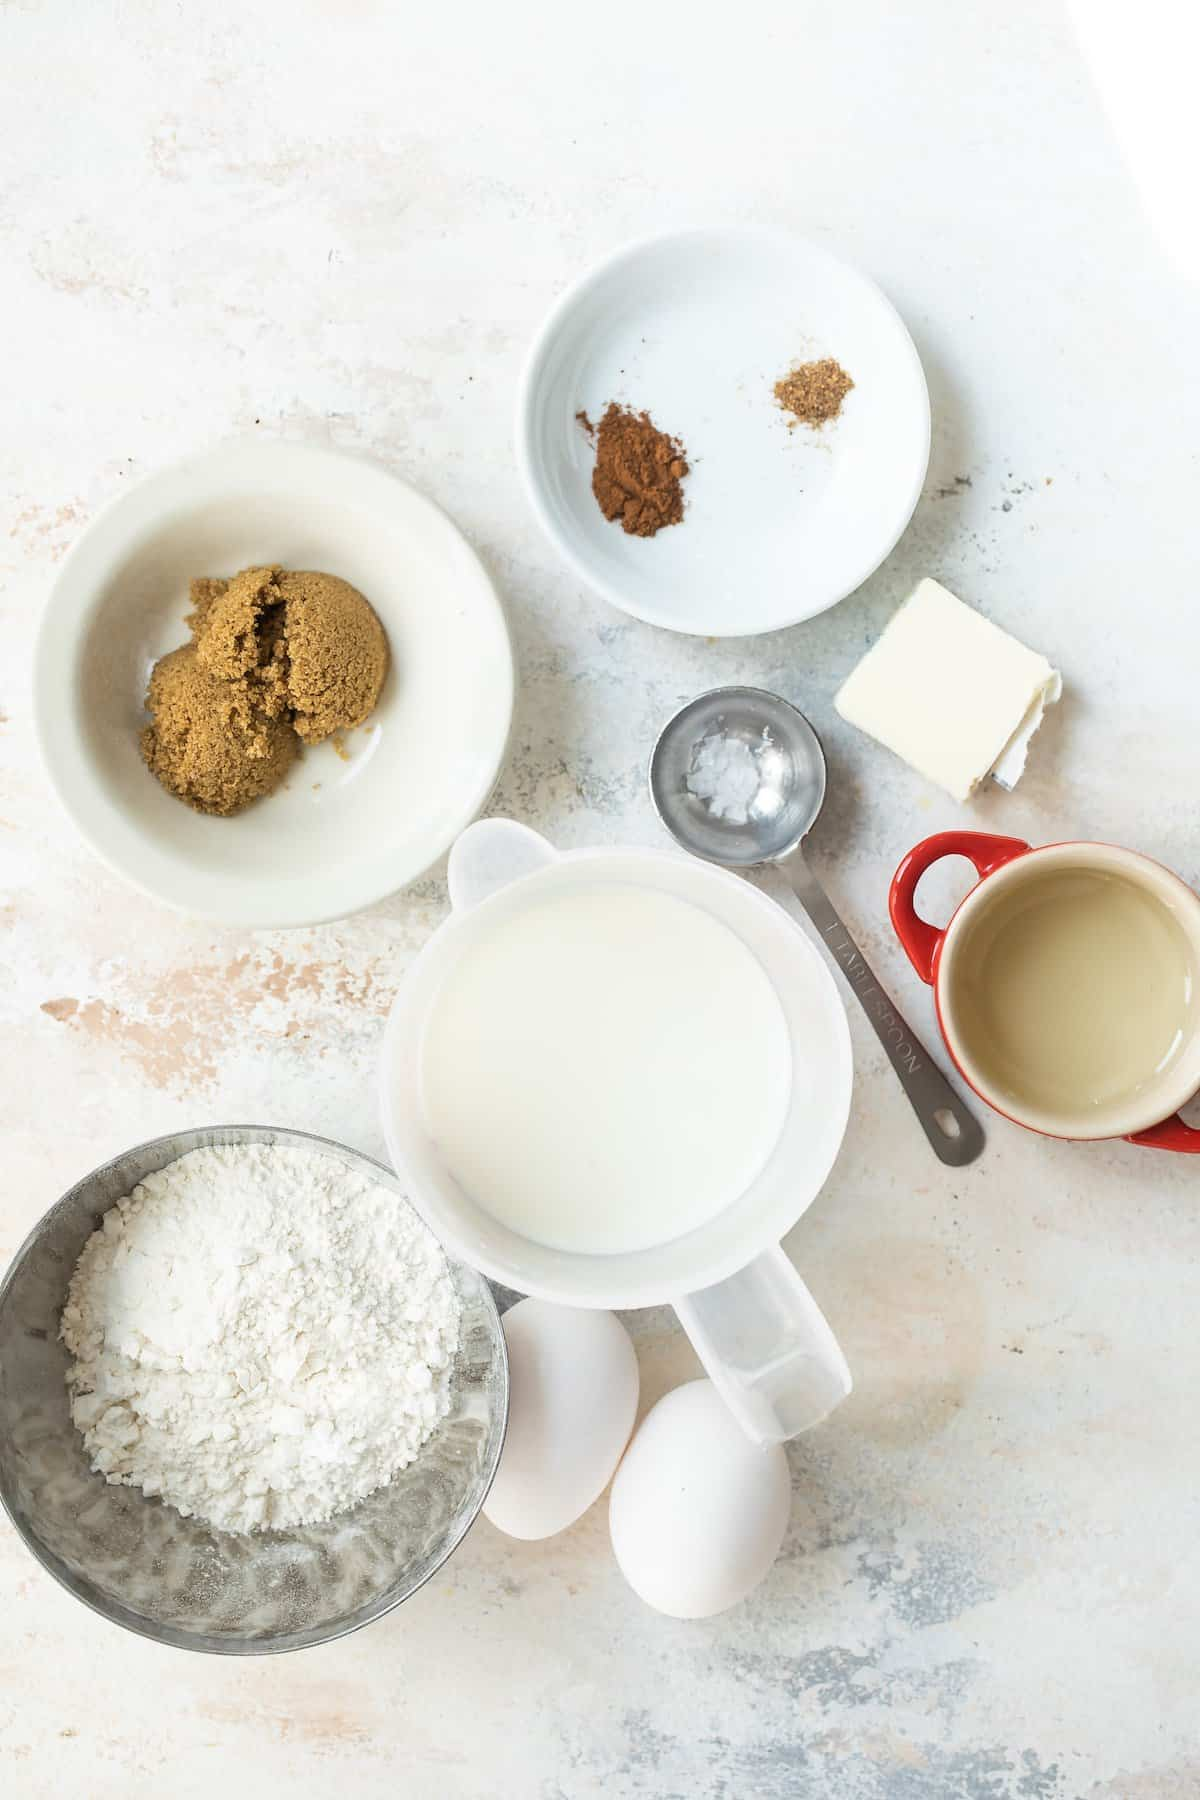 Ingredients for a Dutch baby pancake.